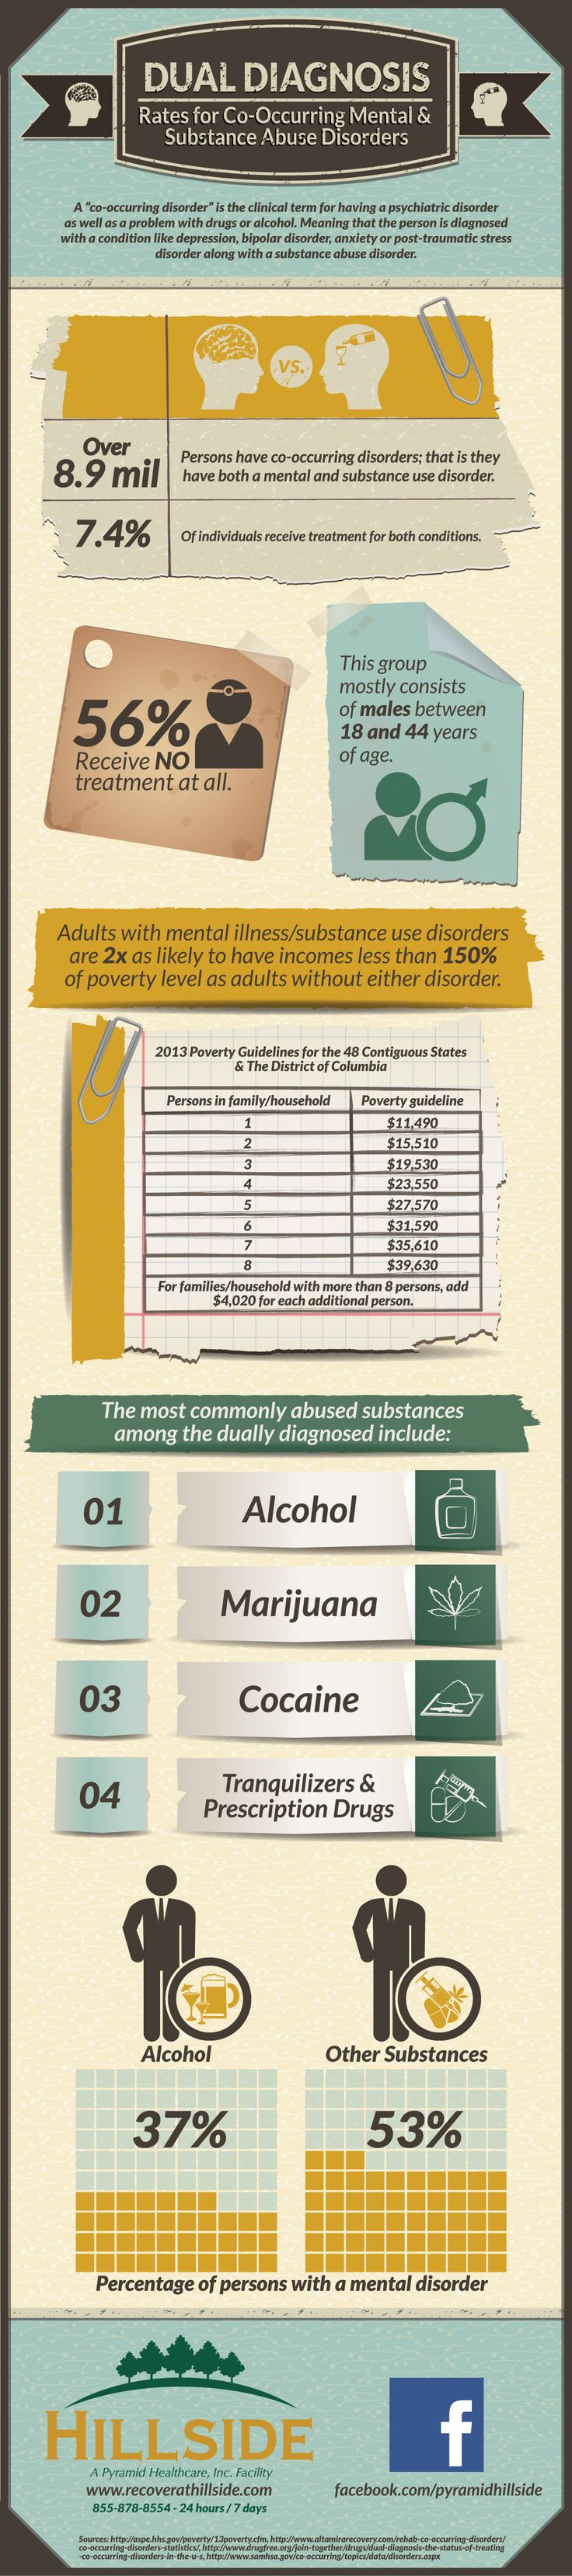 Co-Occuring means a person is suffering from both a mental and substance abuse disorder. It is not that uncommon.